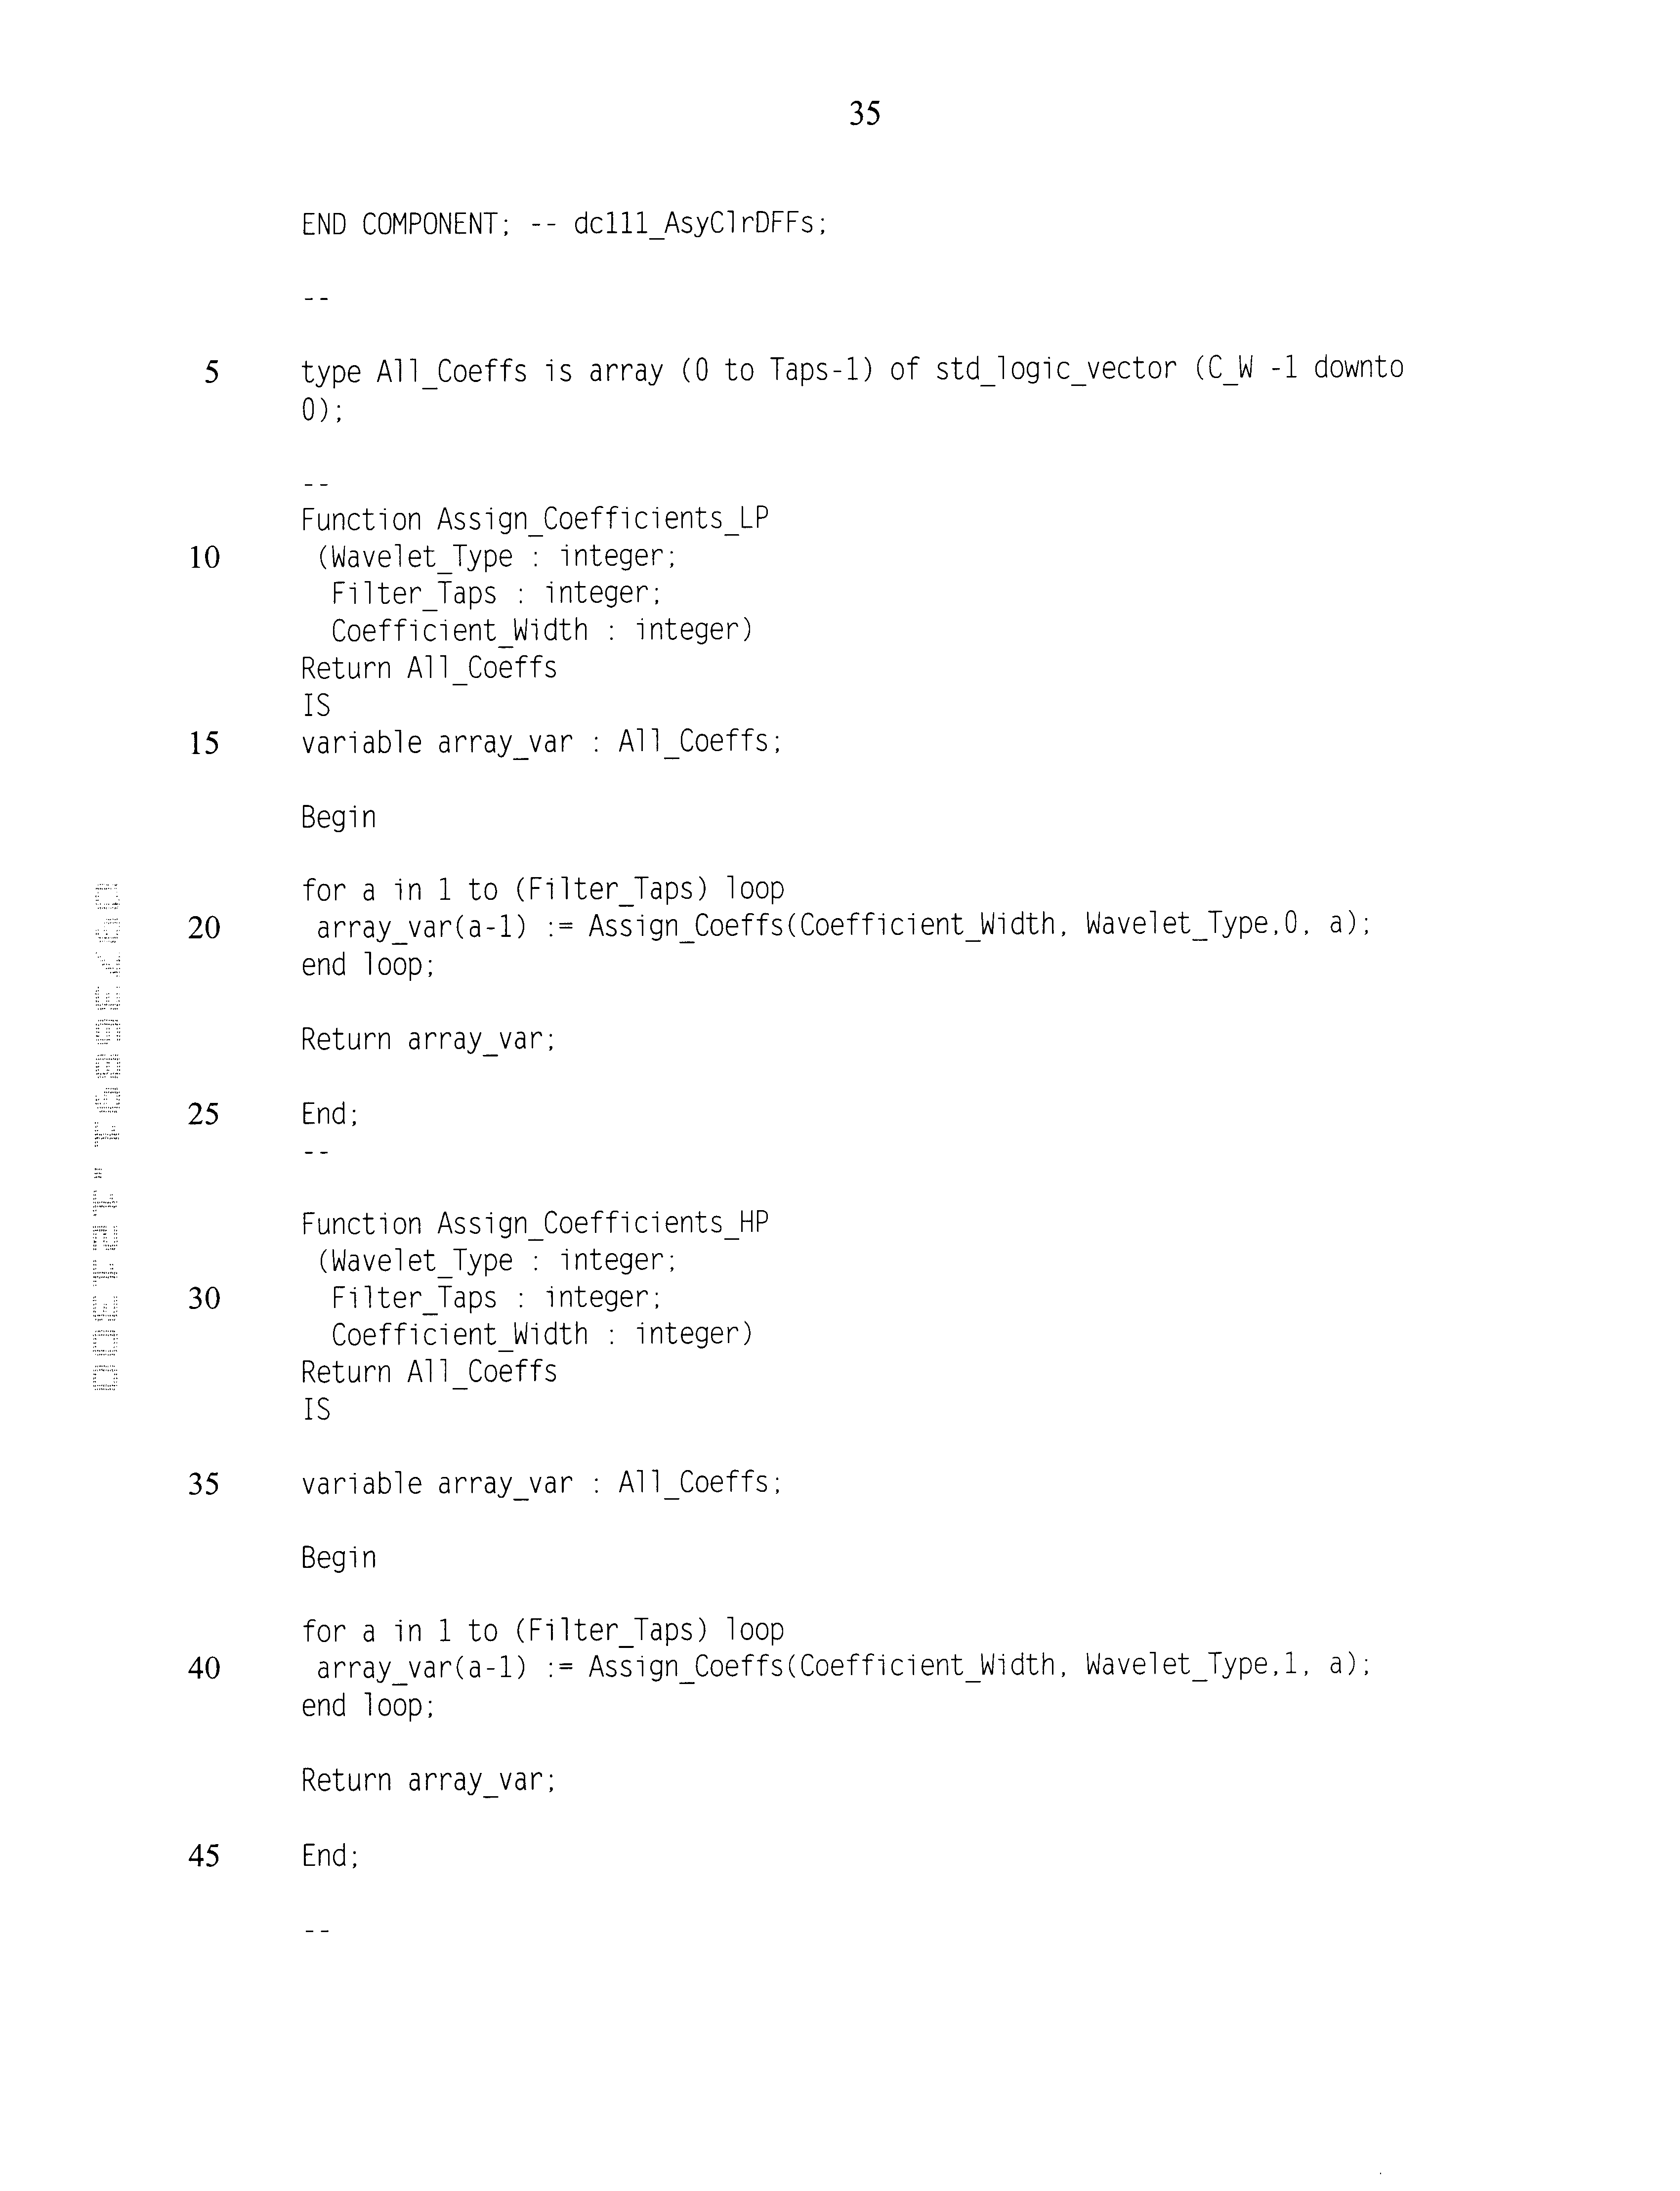 US6785700B2 - Implementation of wavelet functions in